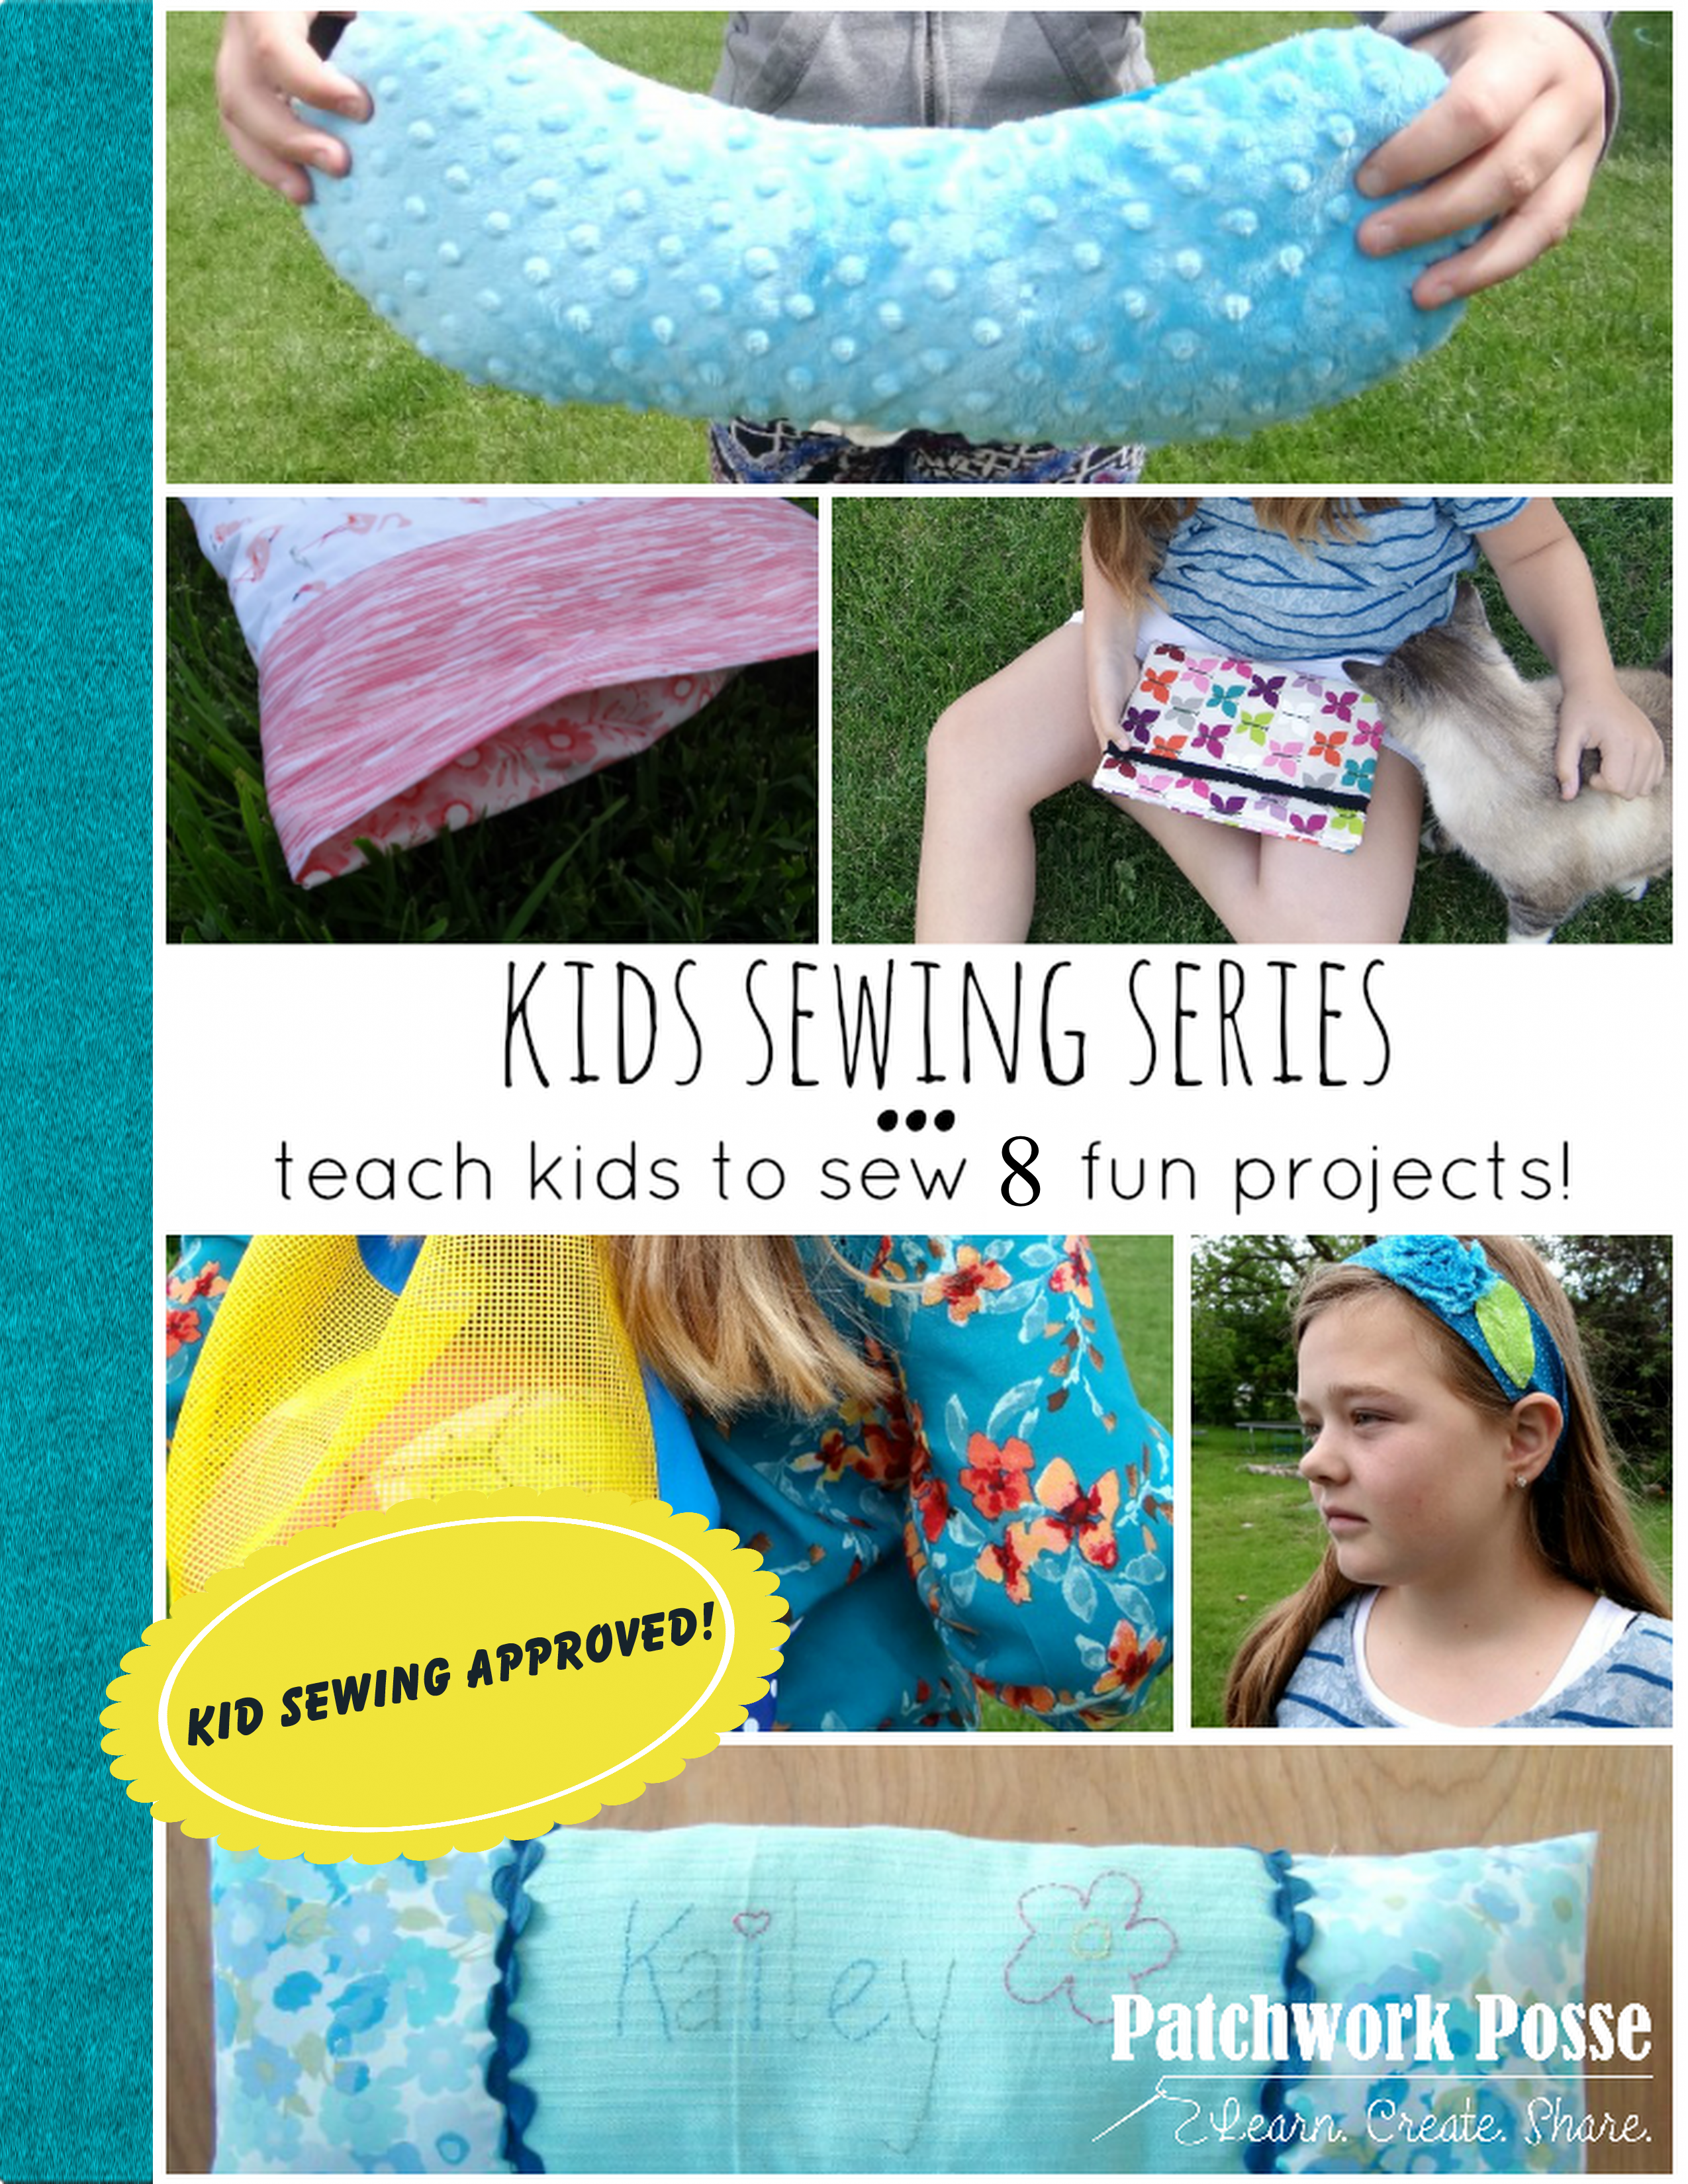 Kids Sewing Series e-book is here!